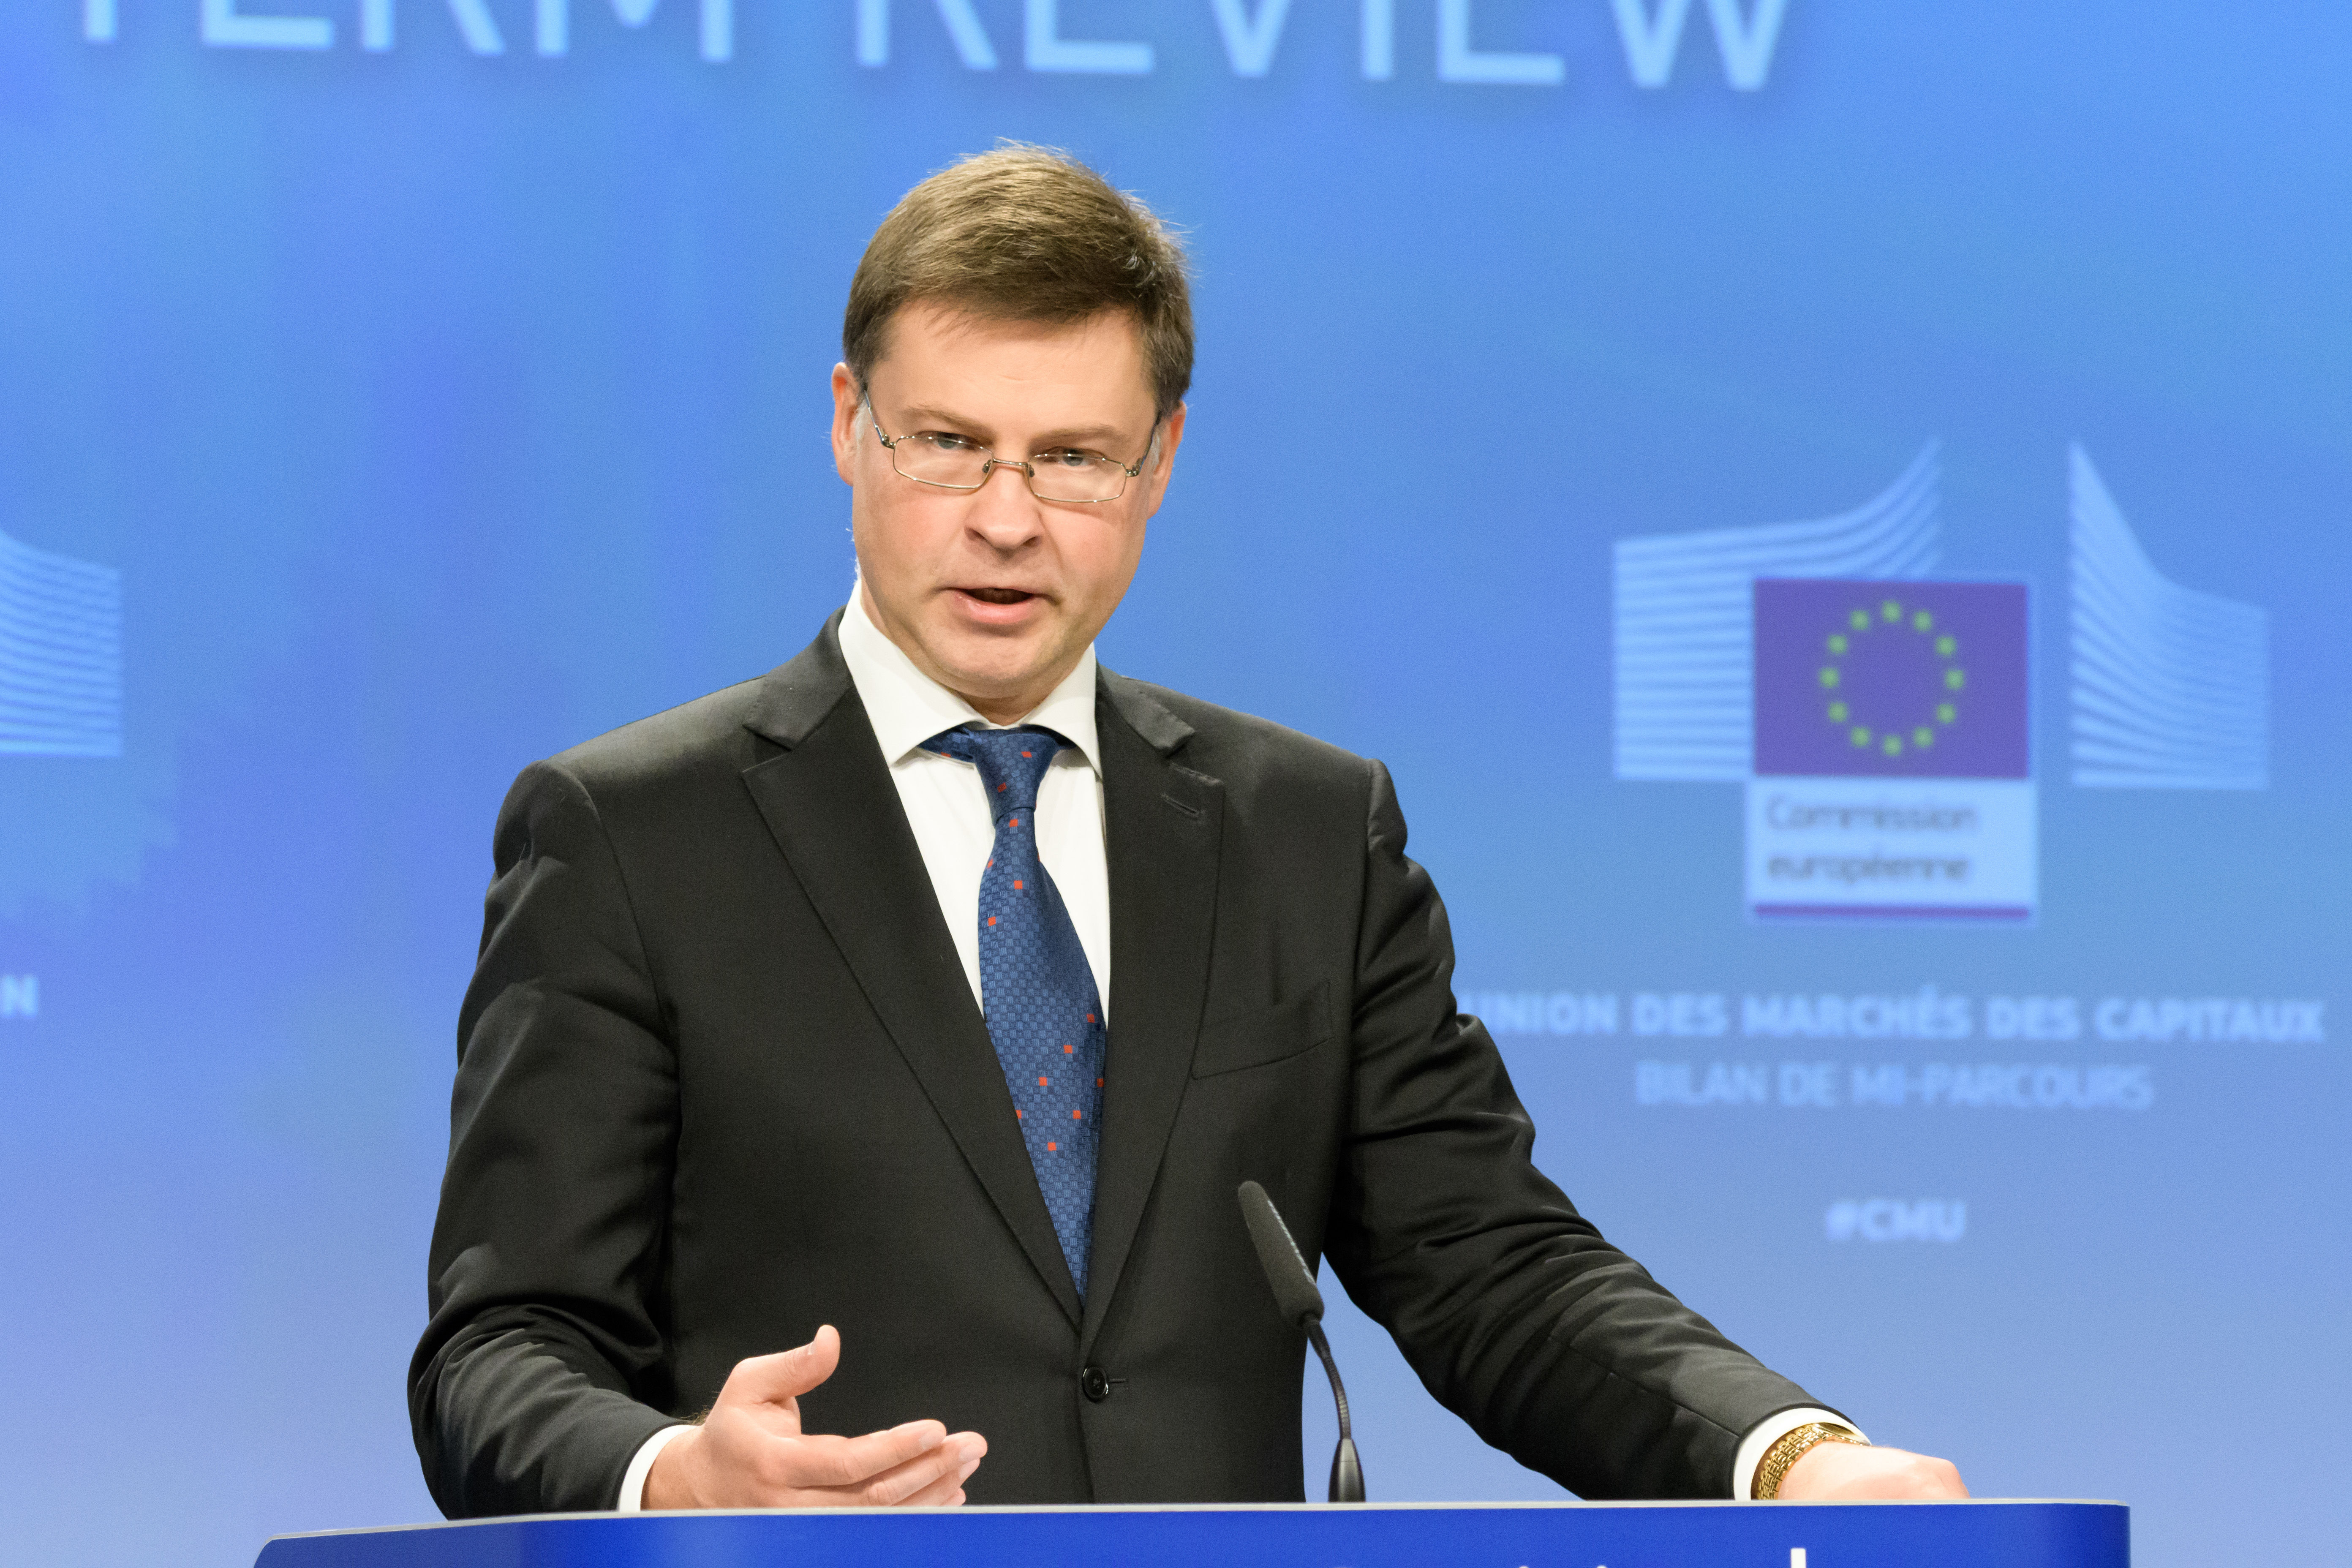 Valdis dombrovskis wife sexual dysfunction